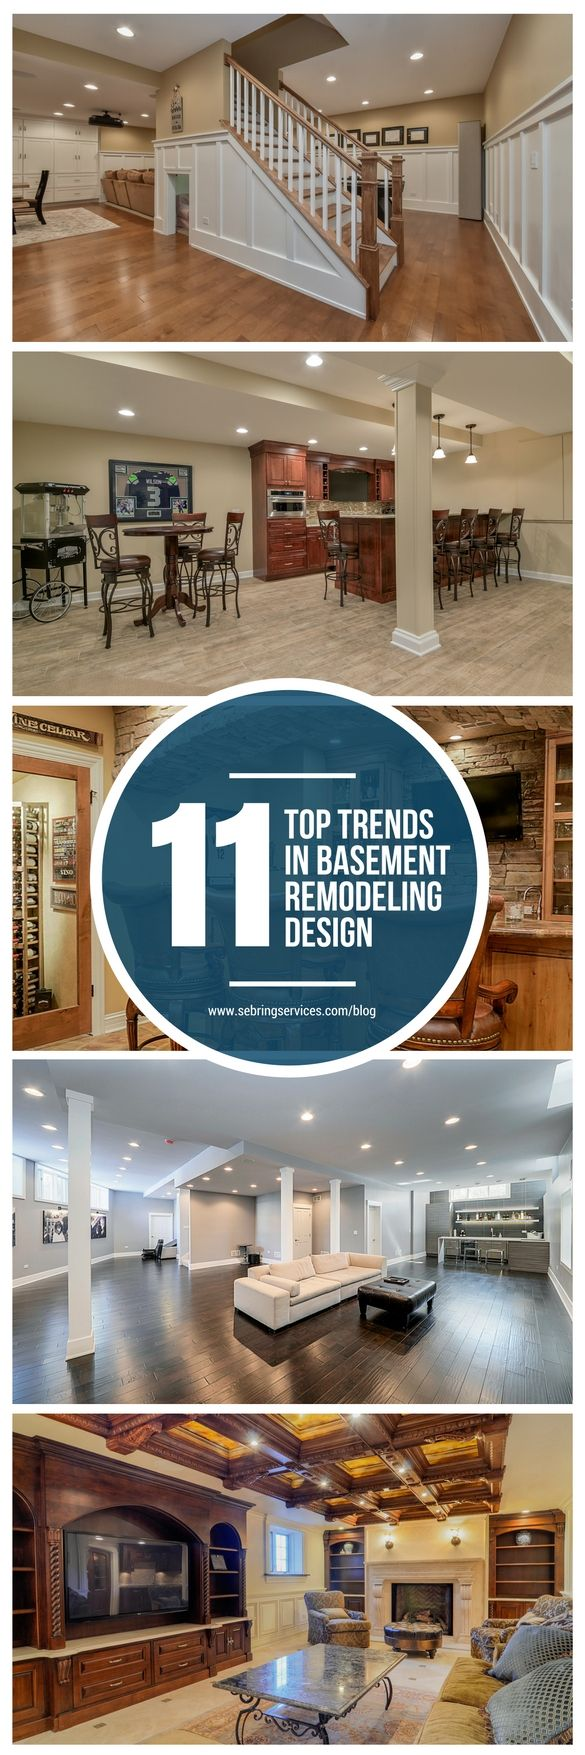 Finished basements are a large part of our business often featuring 11 top trends in download